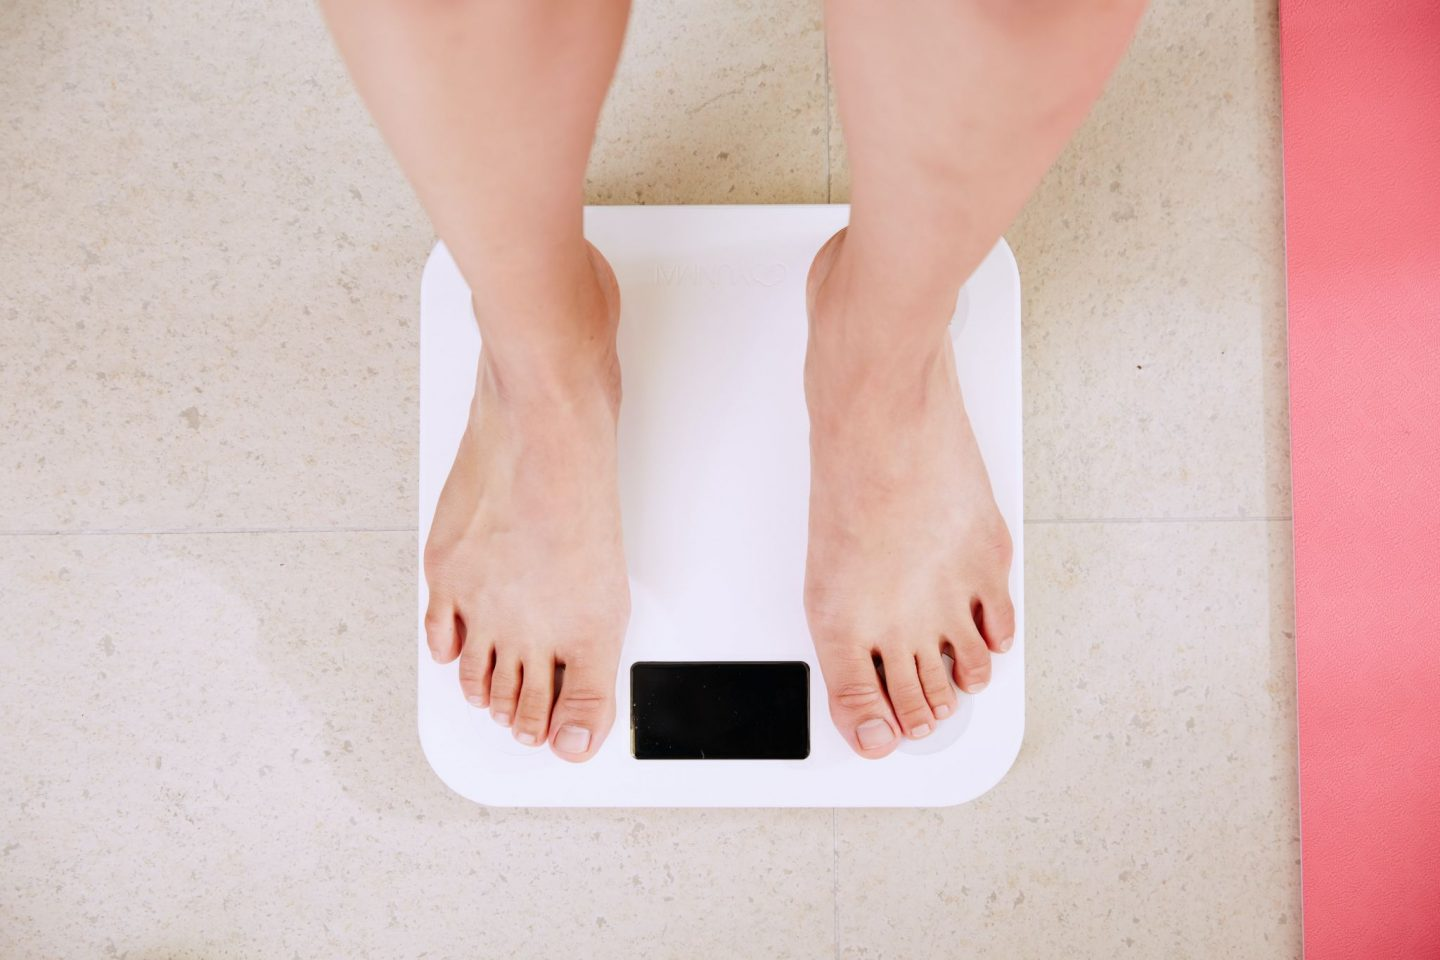 THE ALTERNATIVE PATH: CAN HYPNOTHERAPY HELP YOU LOSE WEIGHT